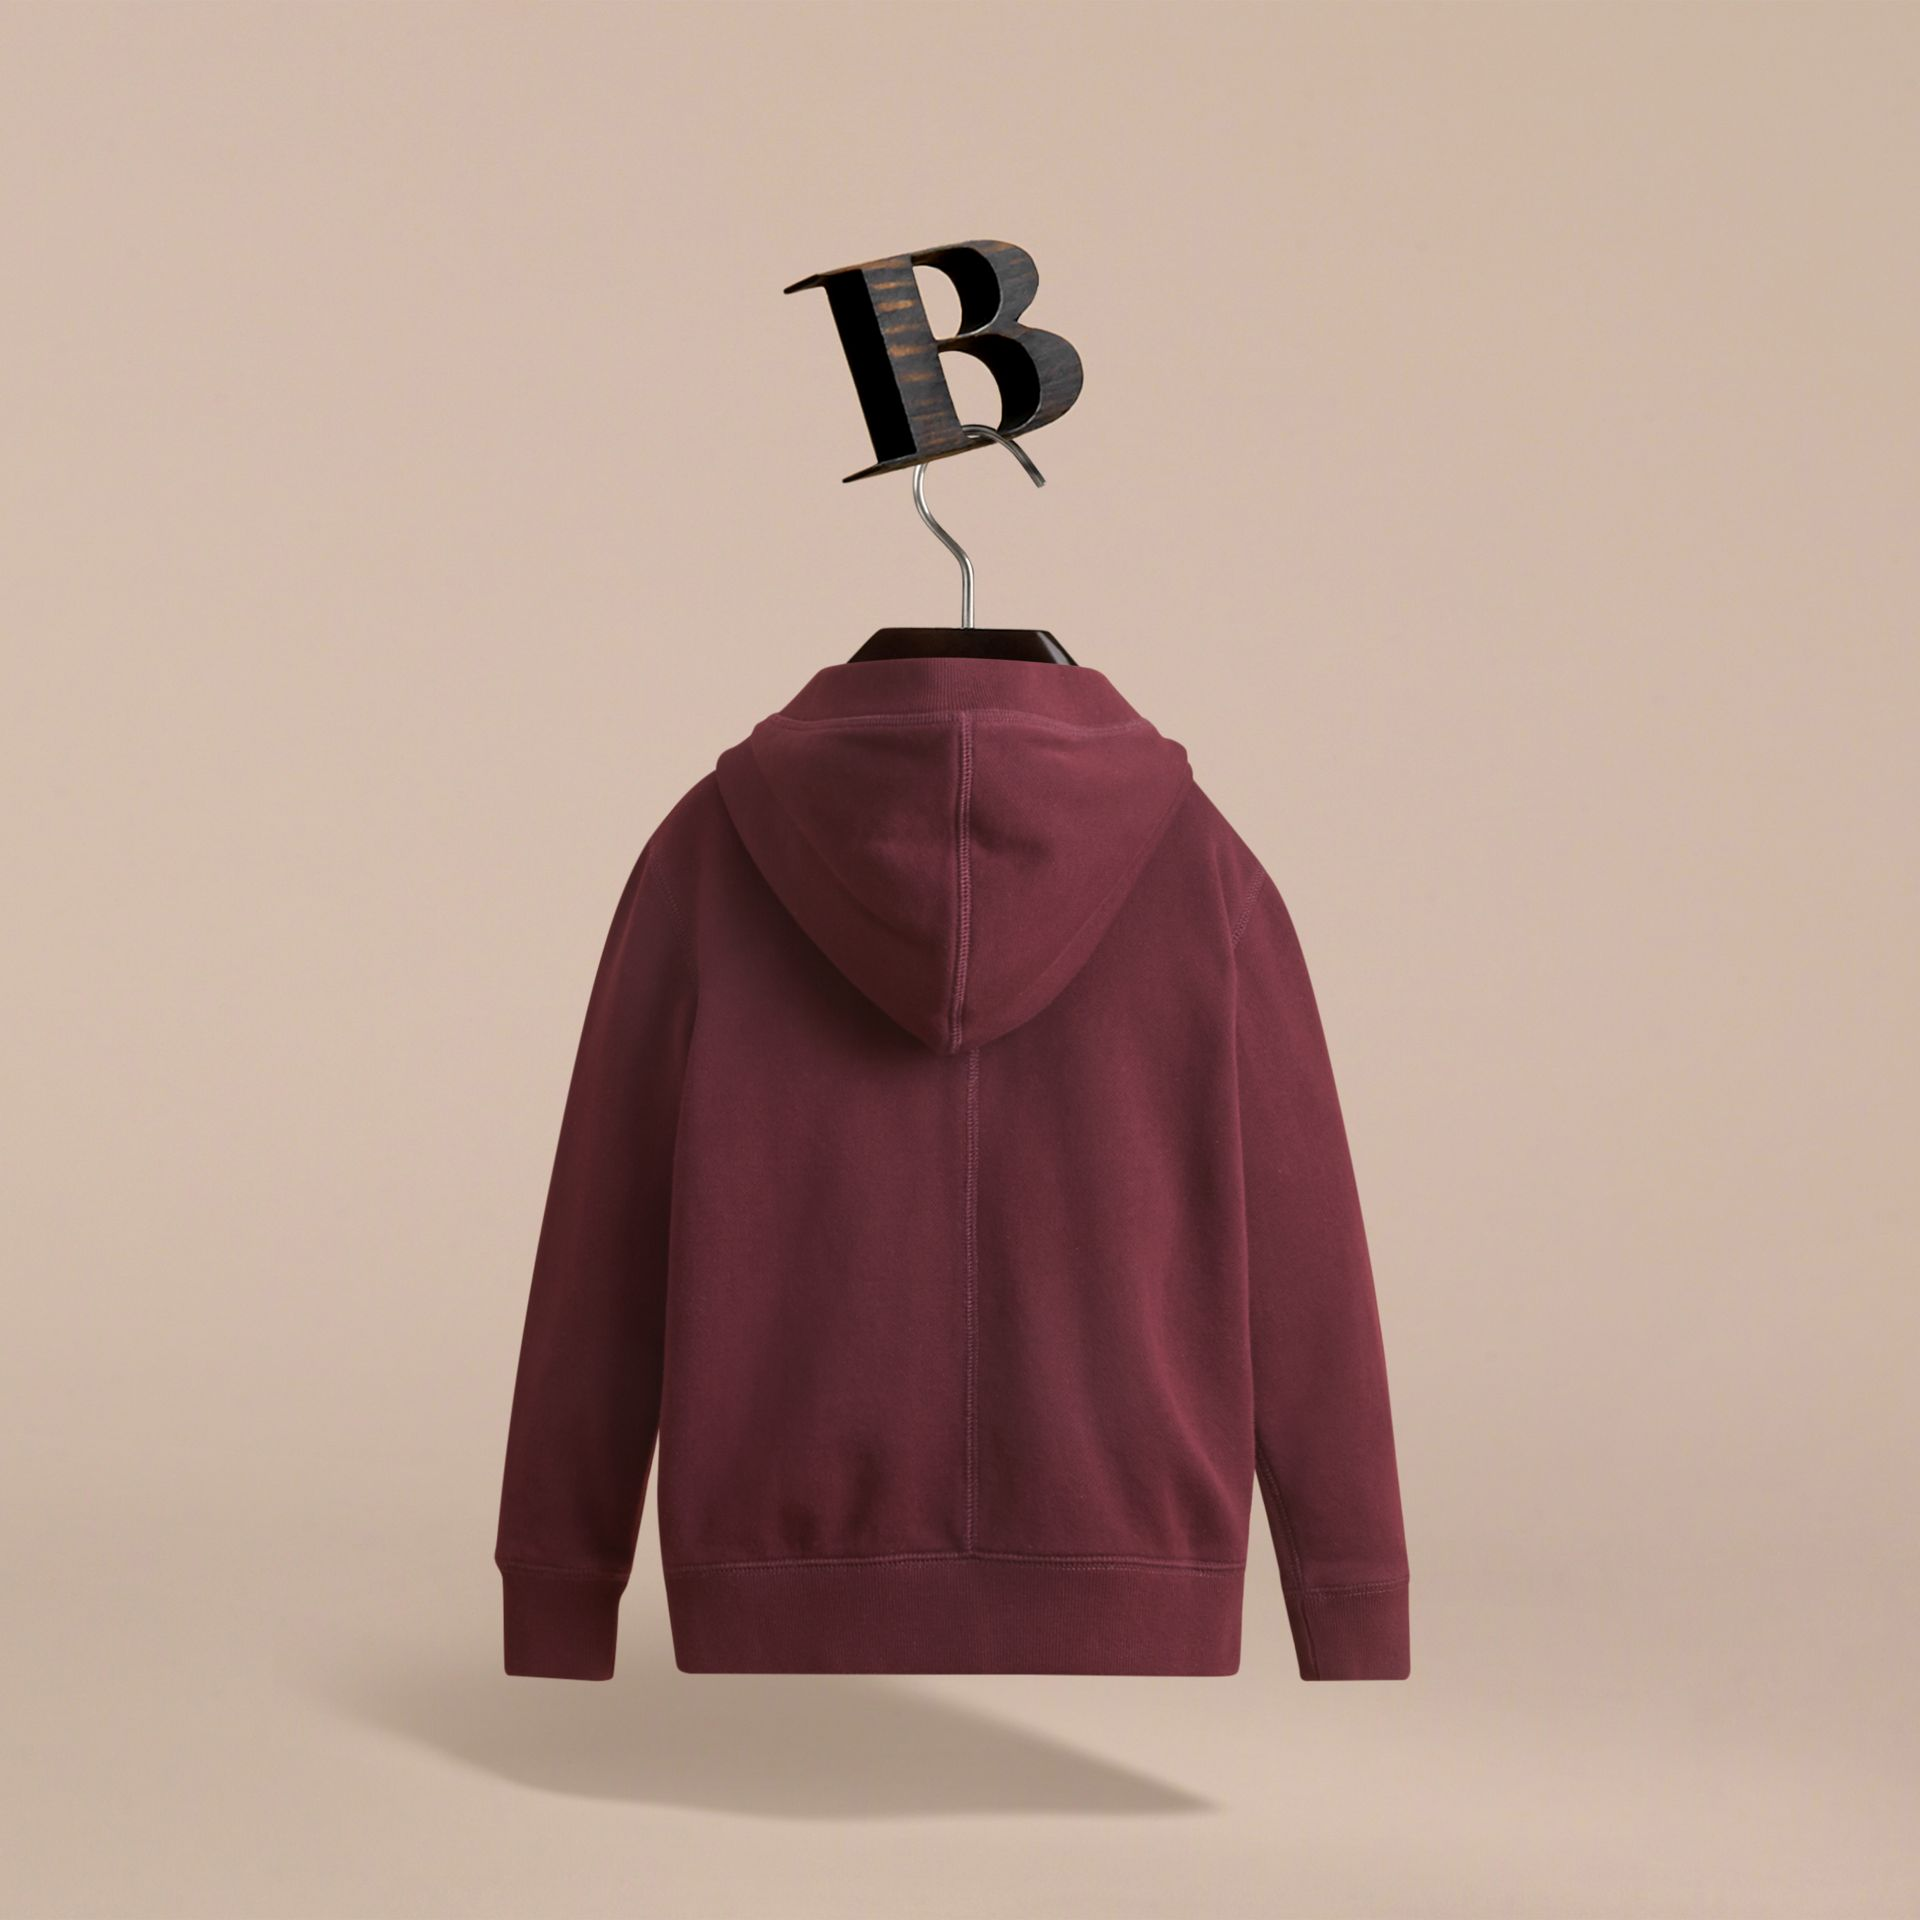 Hooded Cotton Top in Burgundy - Boy | Burberry - gallery image 4